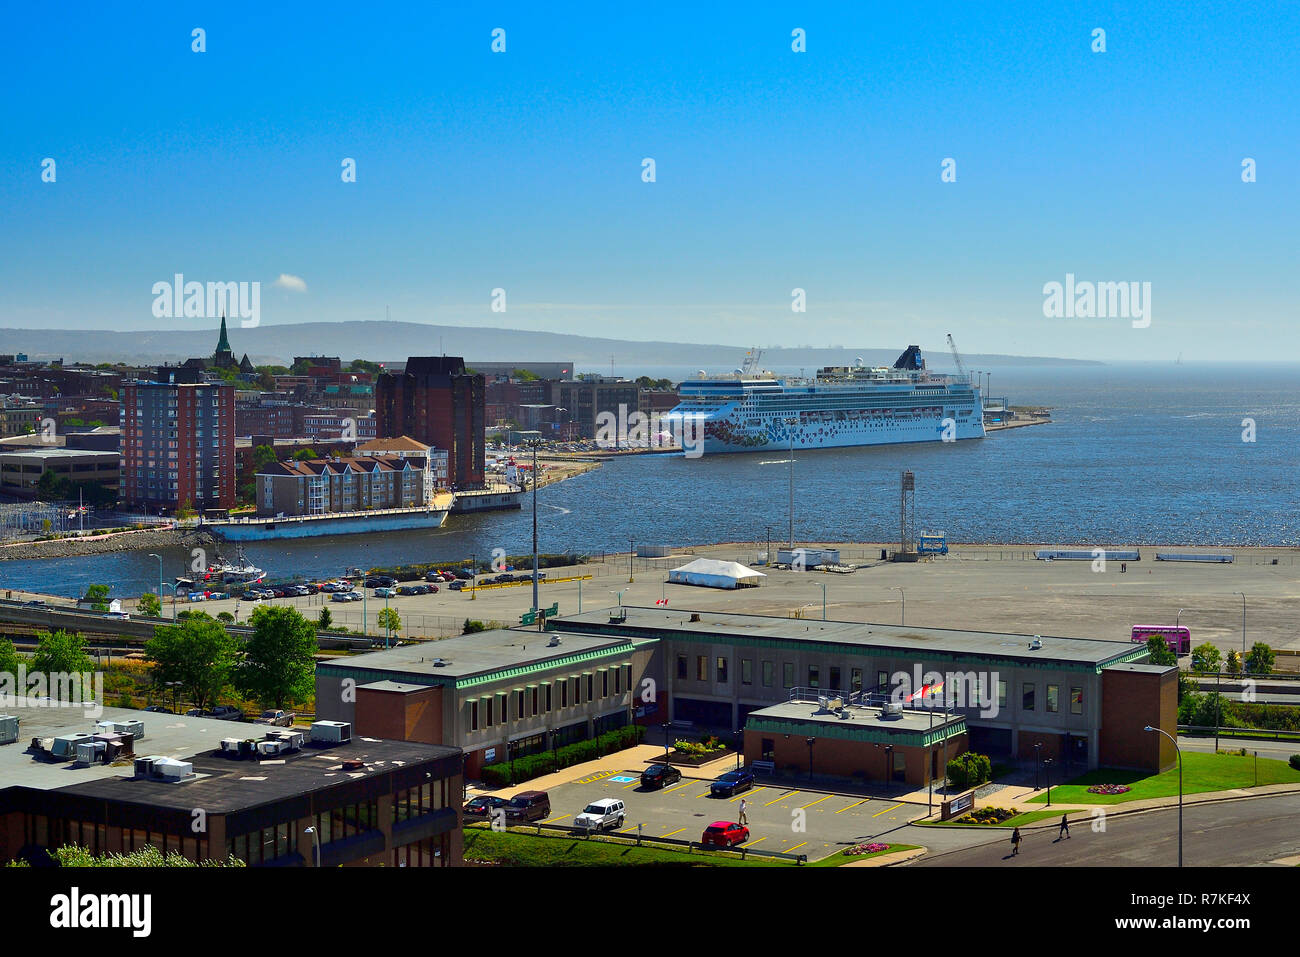 A landscape image of the harbour at Saint John on the Bay of Fundy in New Brunswick showing the waterfront with a passenger ship in port. - Stock Image